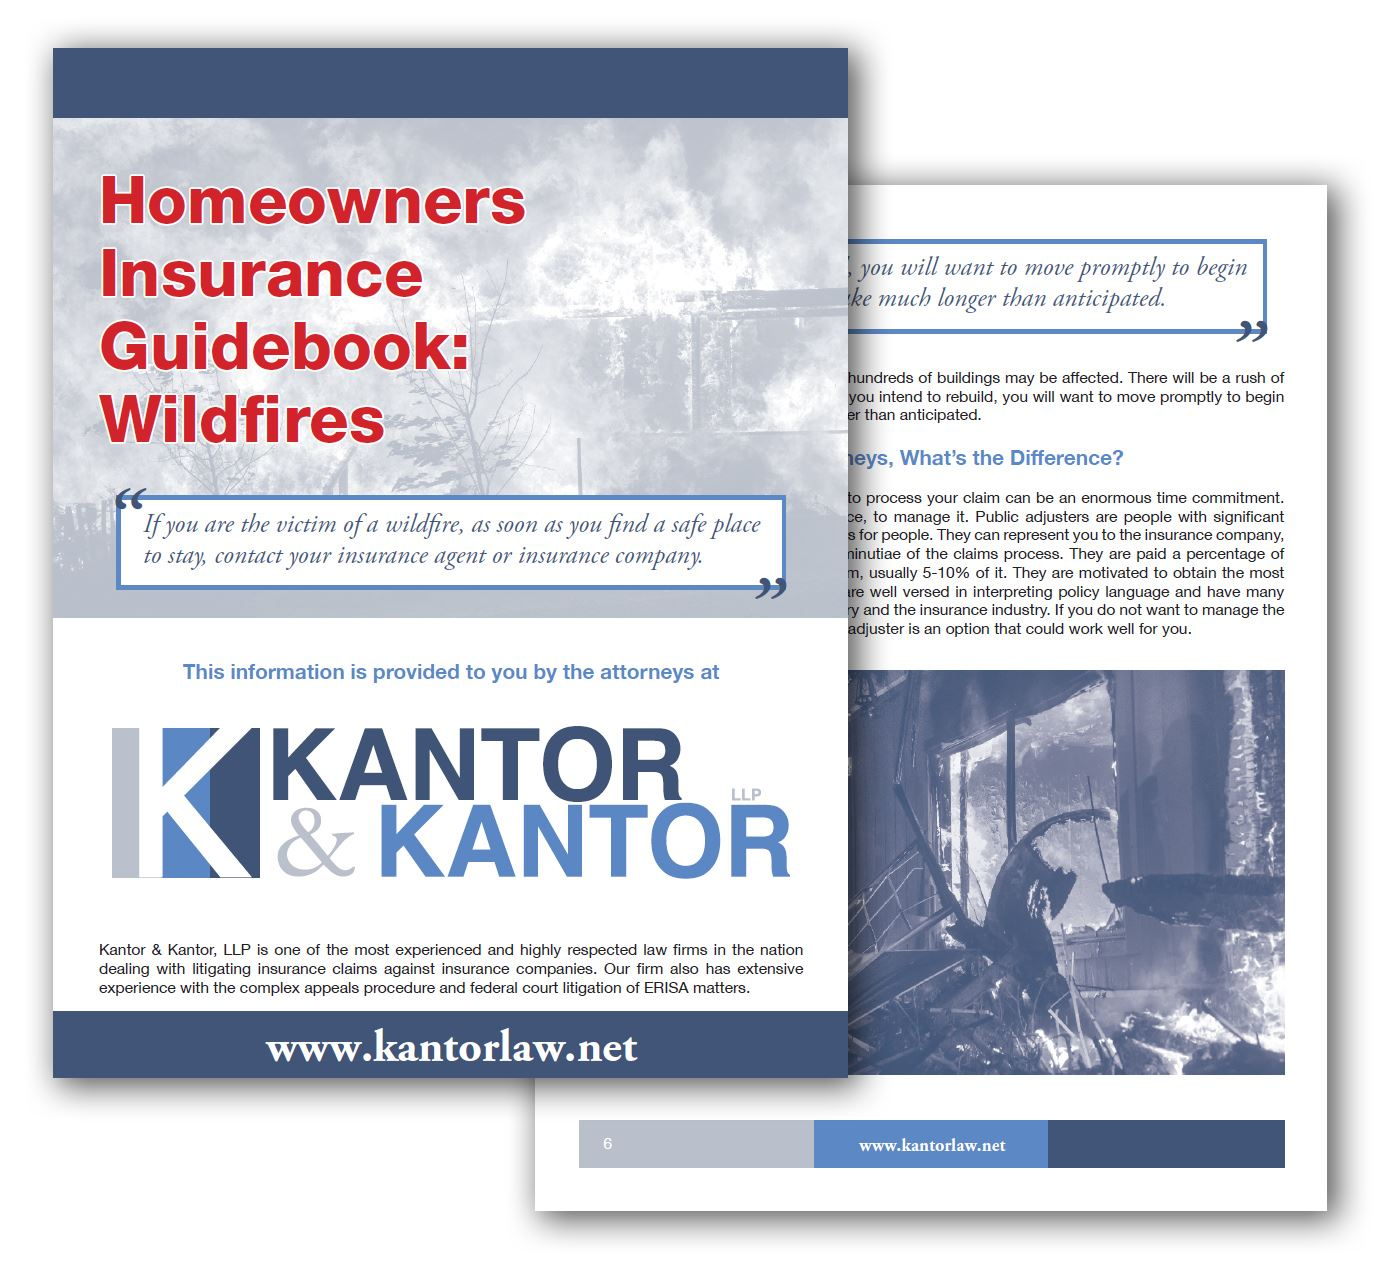 Click Here to View Our Wildfires Insurance Claims Guidebook for Homeowners in California